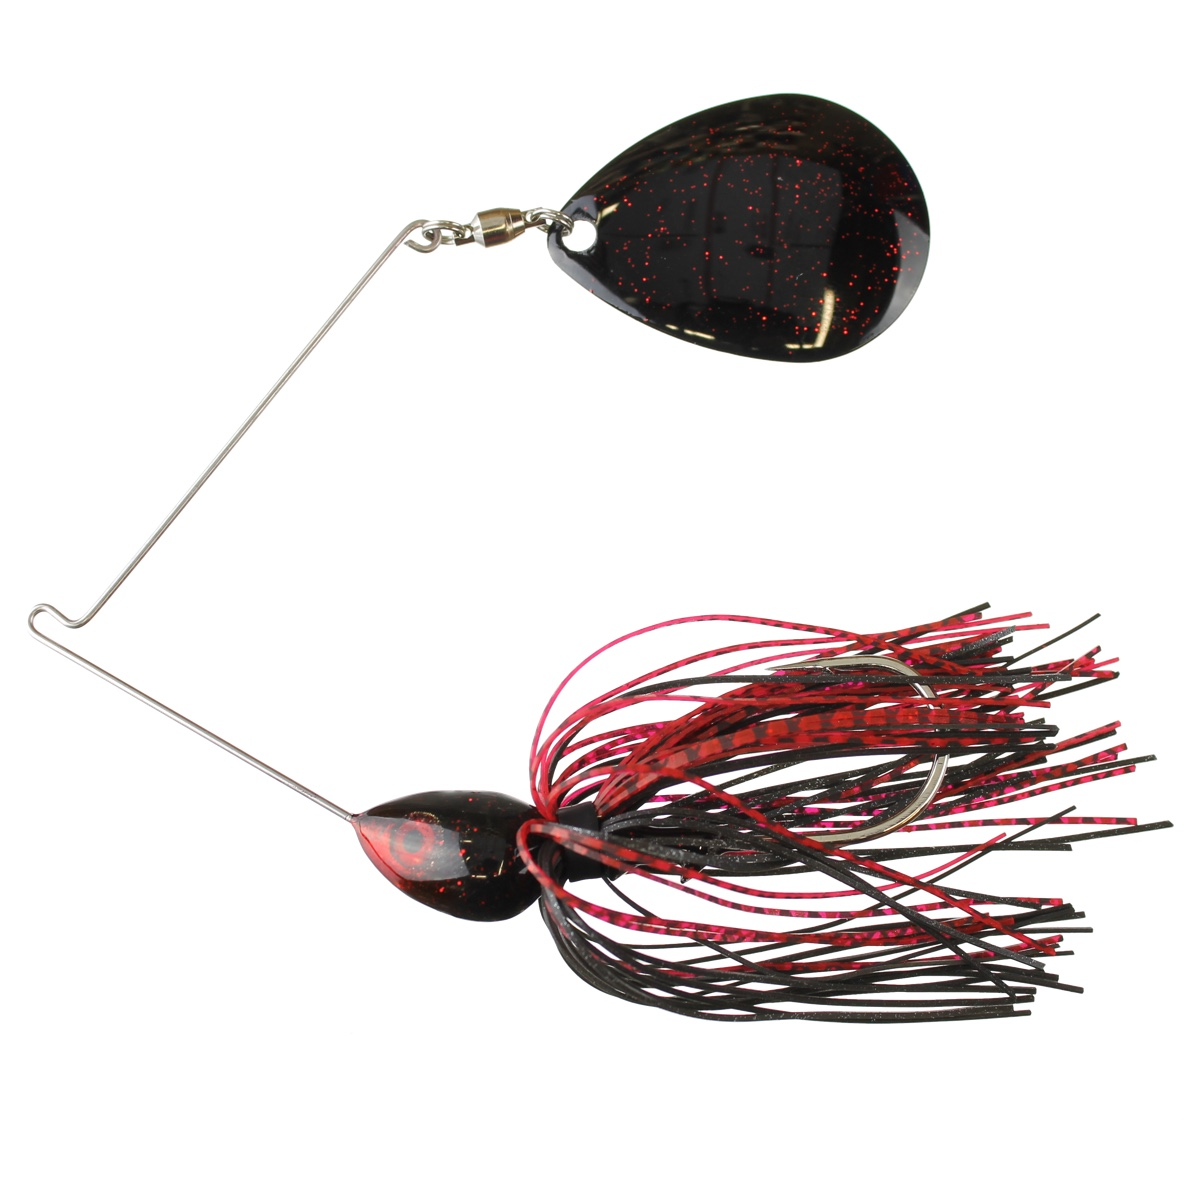 Night Spinnerbaits